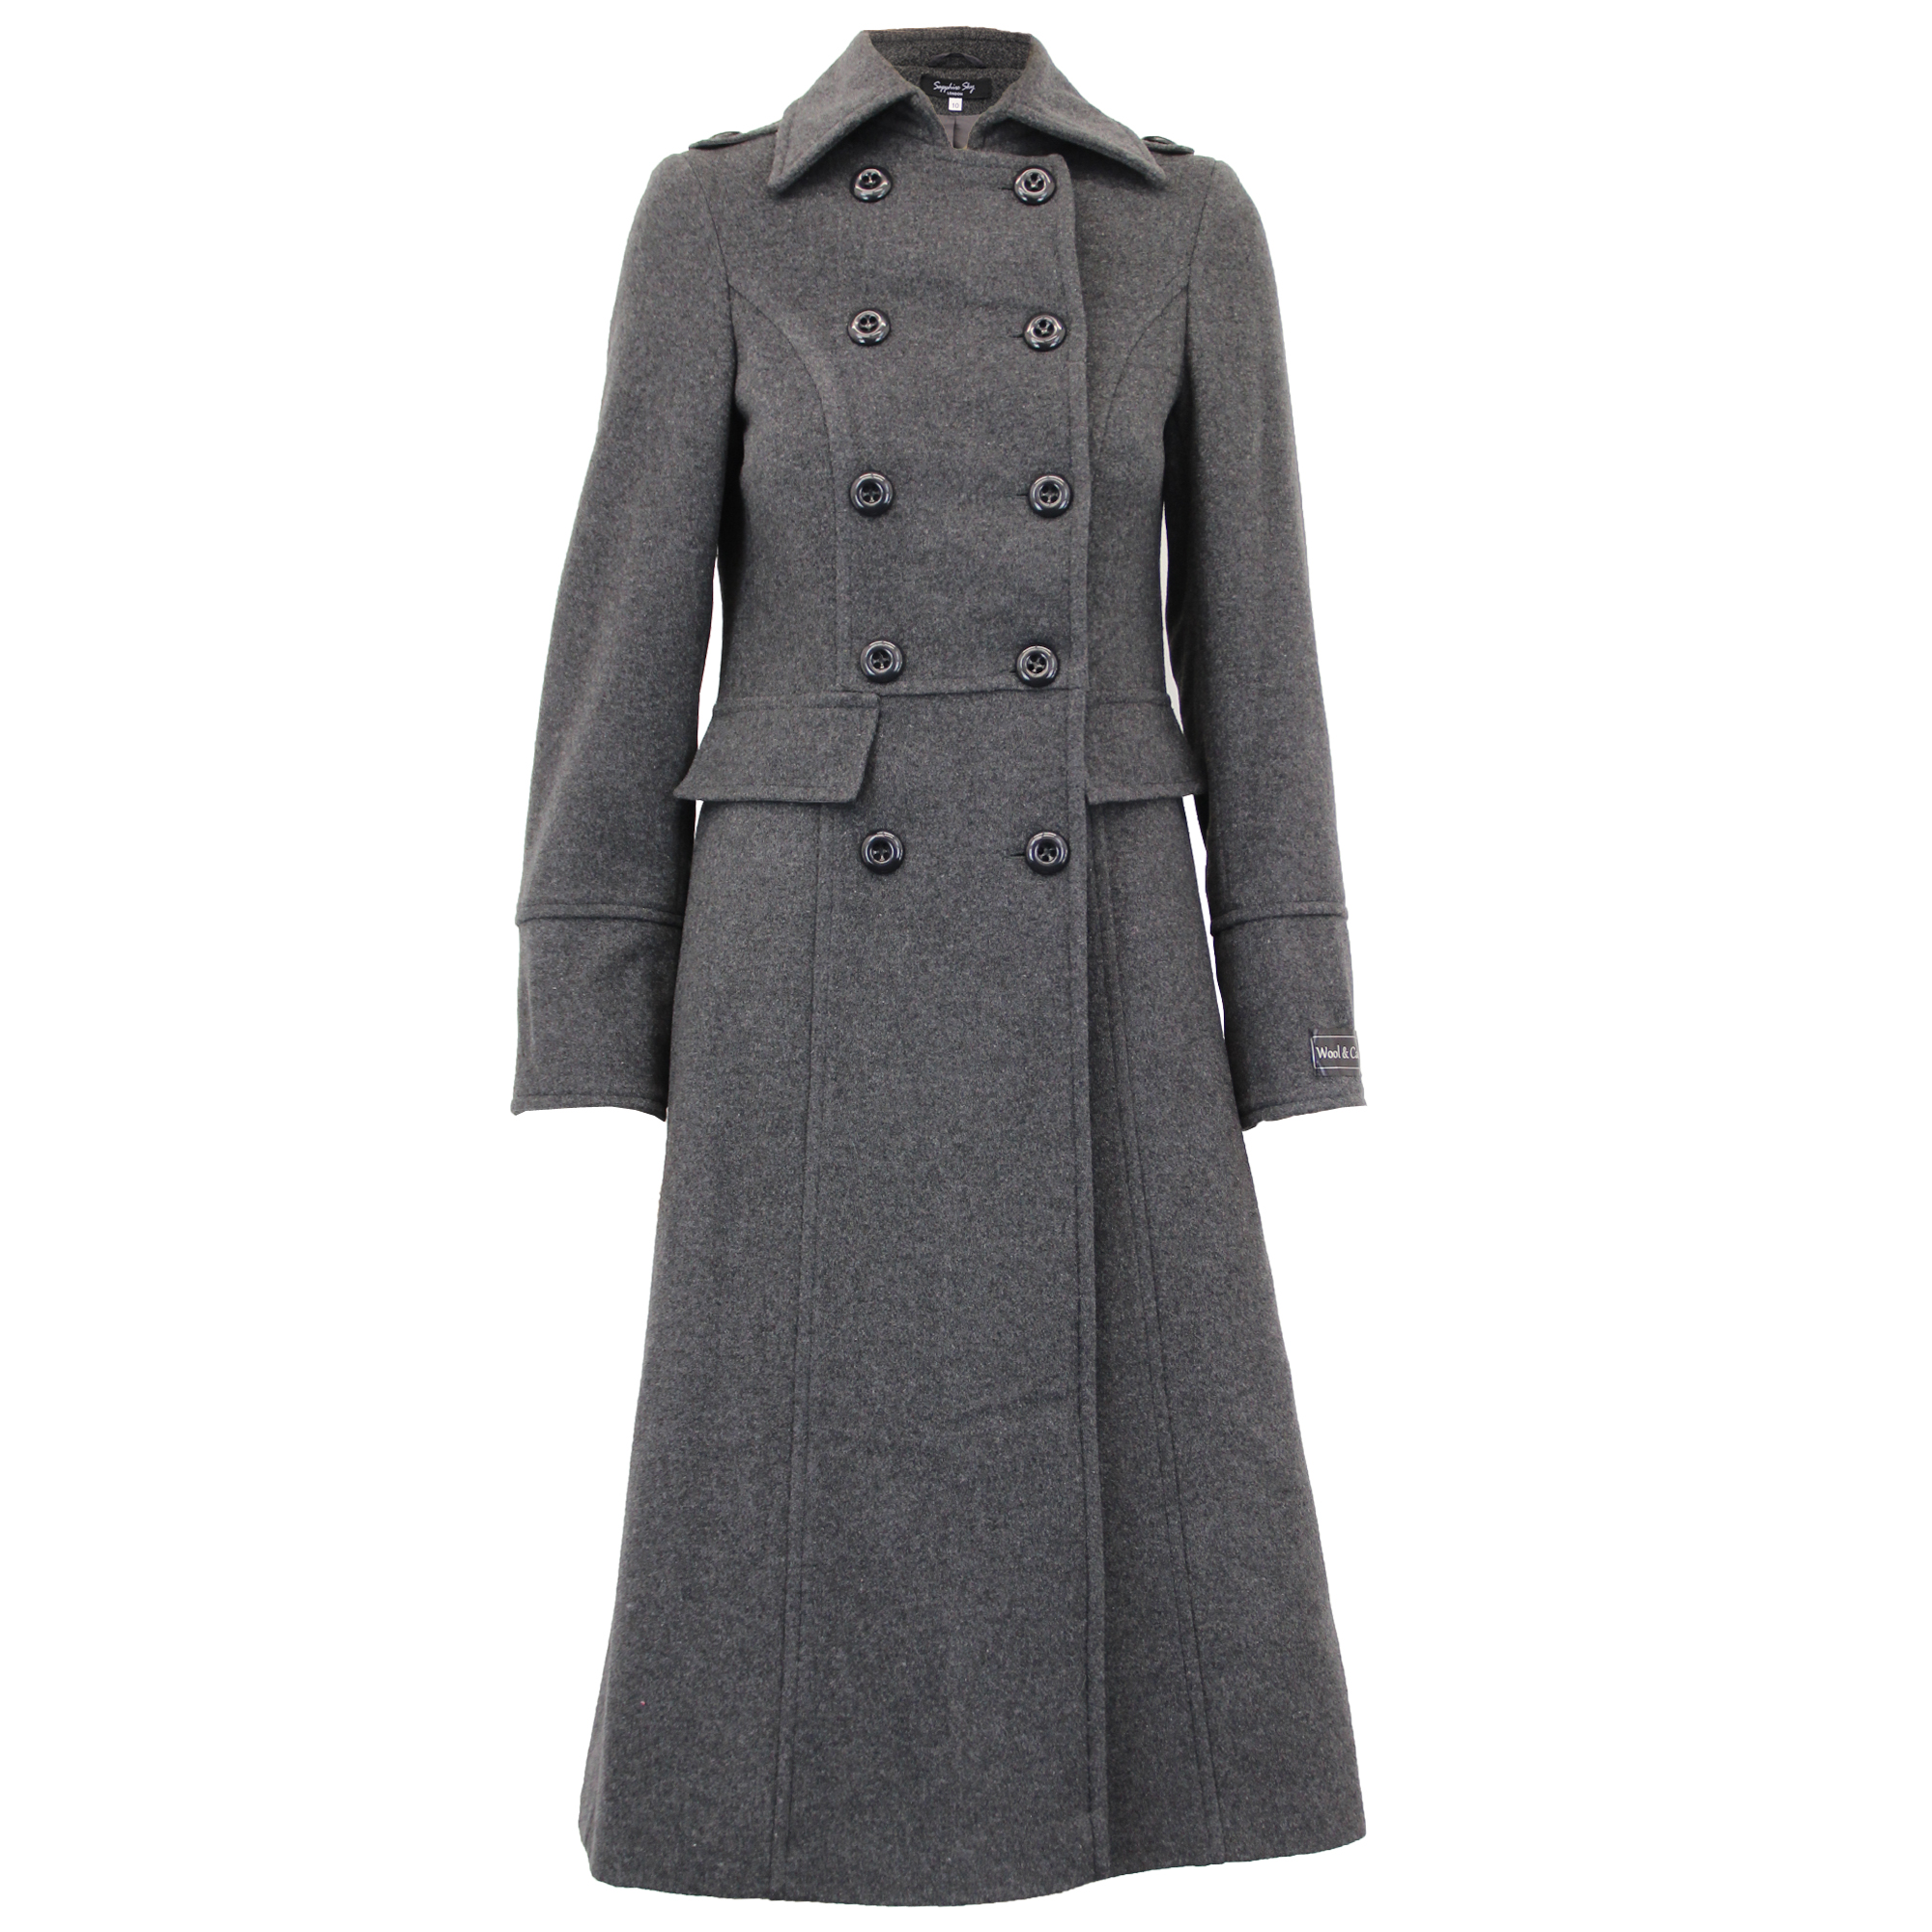 Ladies Wool Cashmere Coat Women Jacket Outerwear Trench